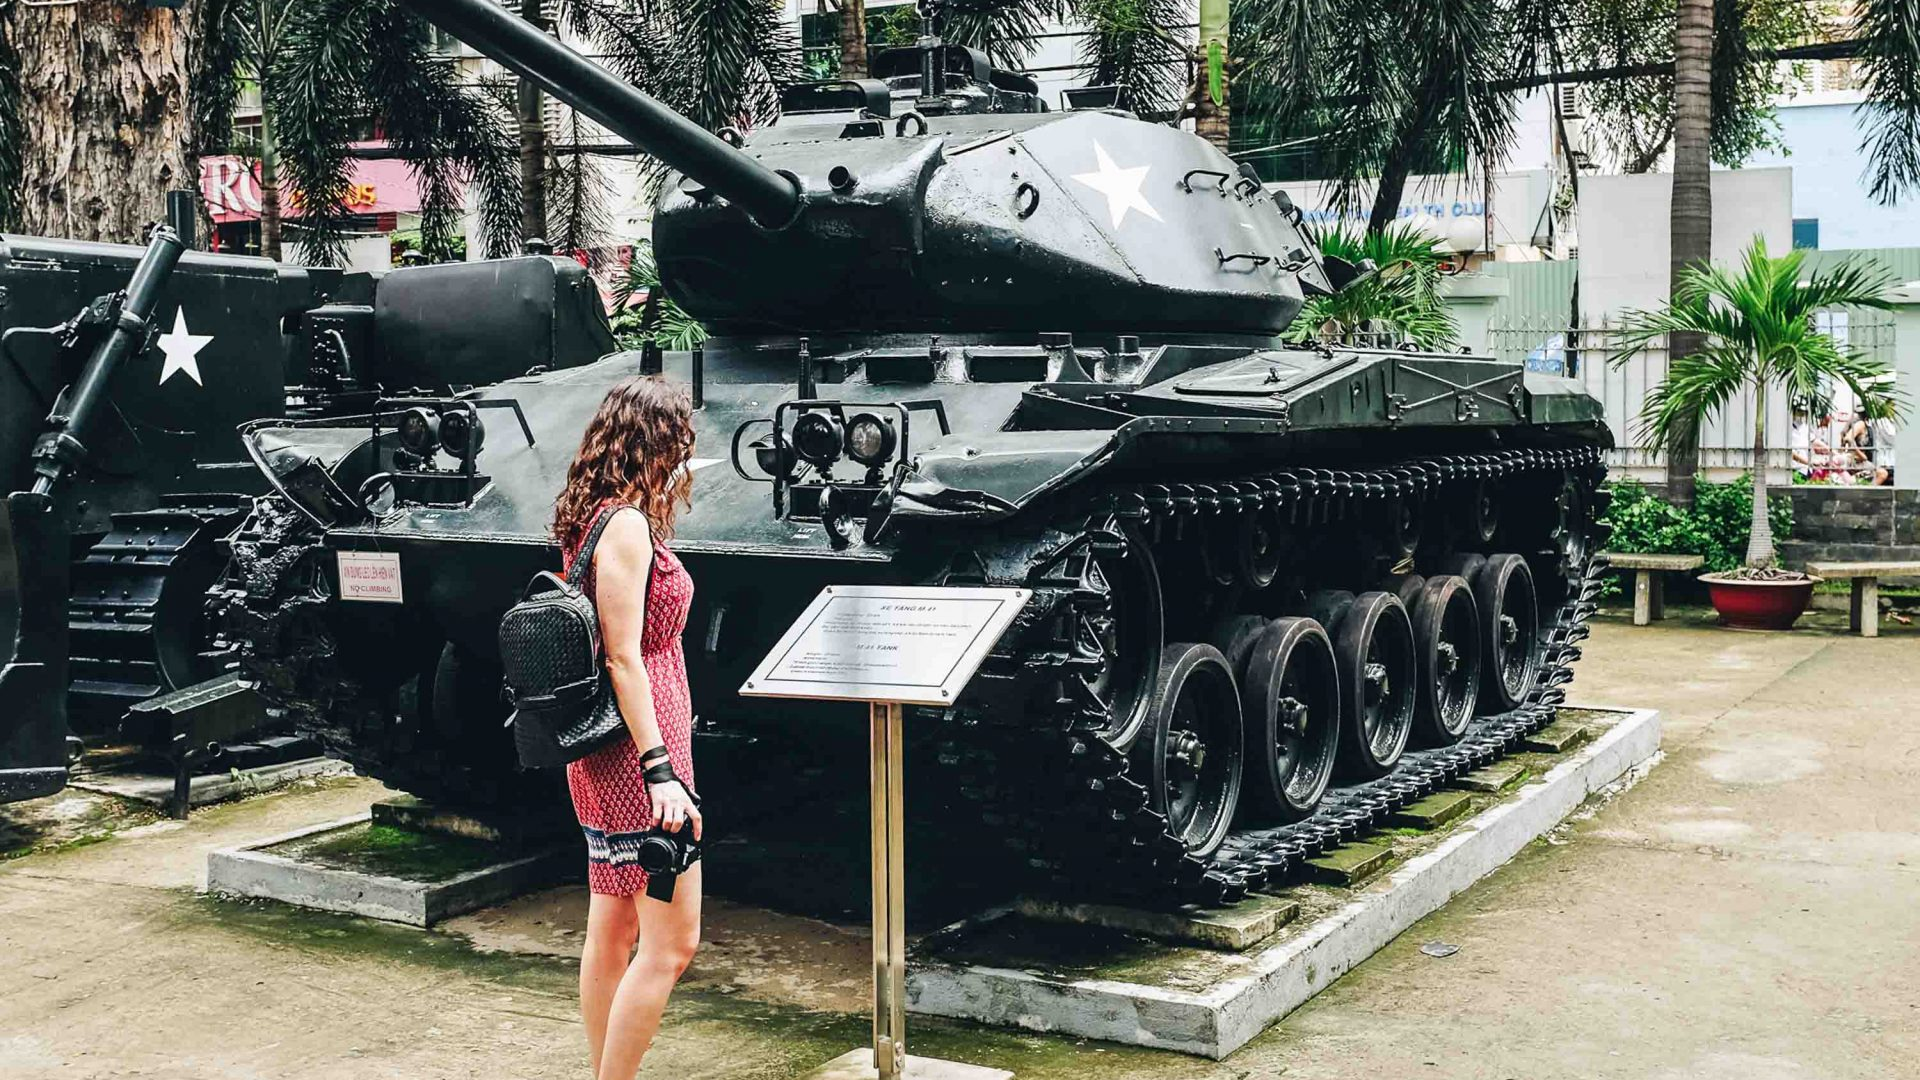 A visitor takes a closer look at an army tank at the War Remnants Museum in Ho Chi Minh City.